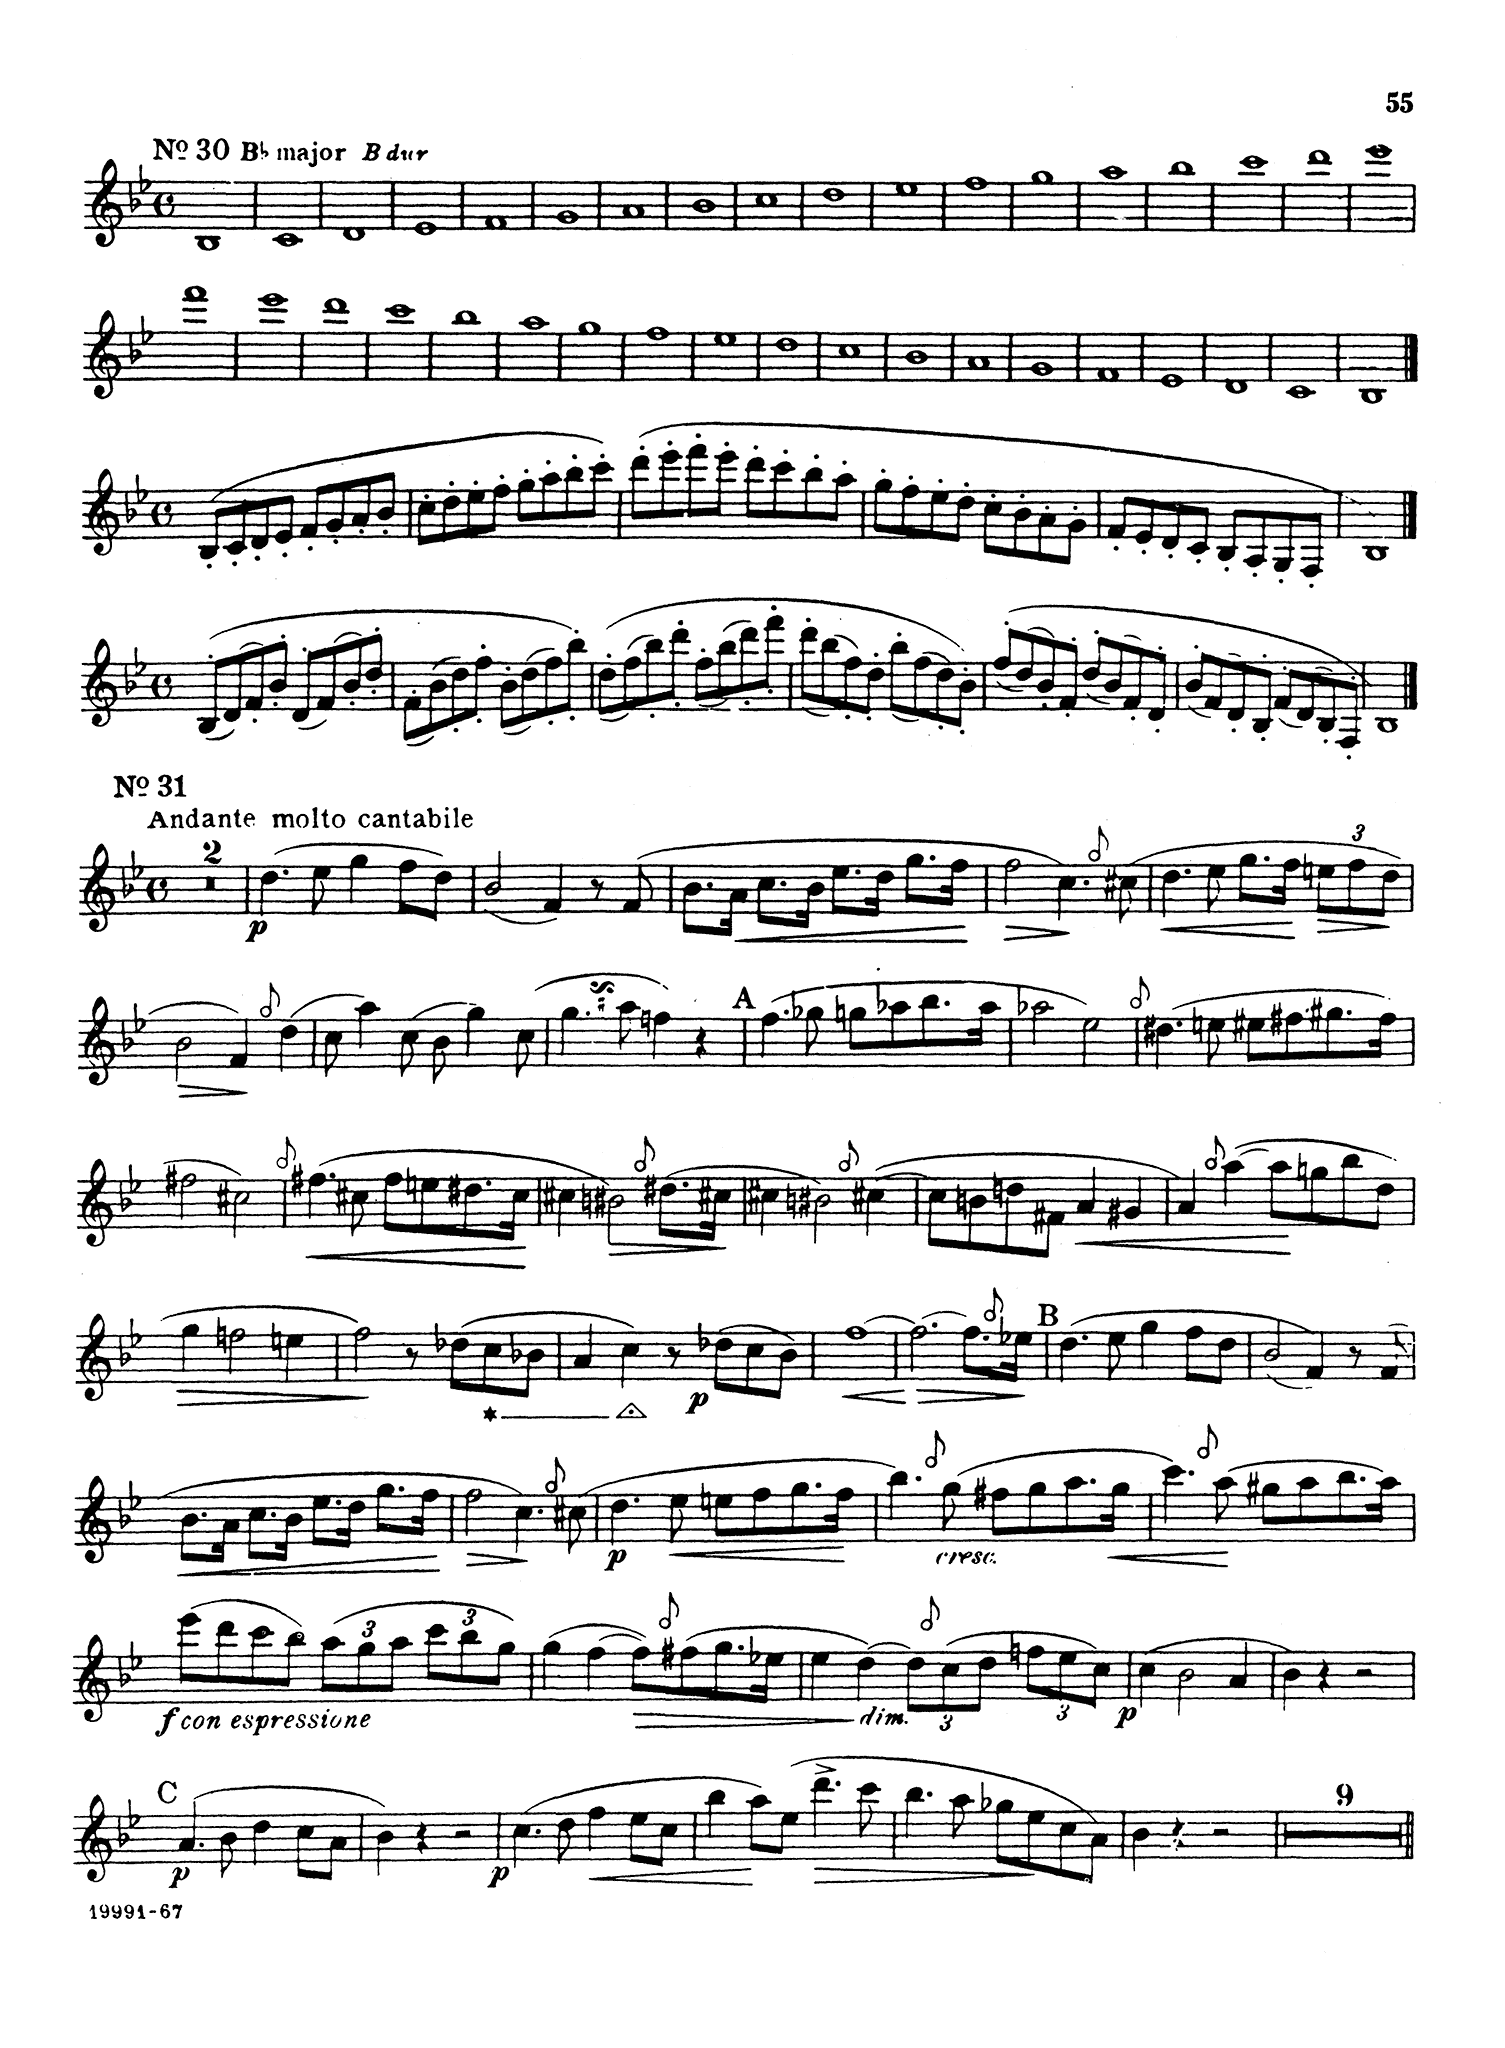 Clarinet Method, Op. 63, Divisions 1 & 2 Page 55